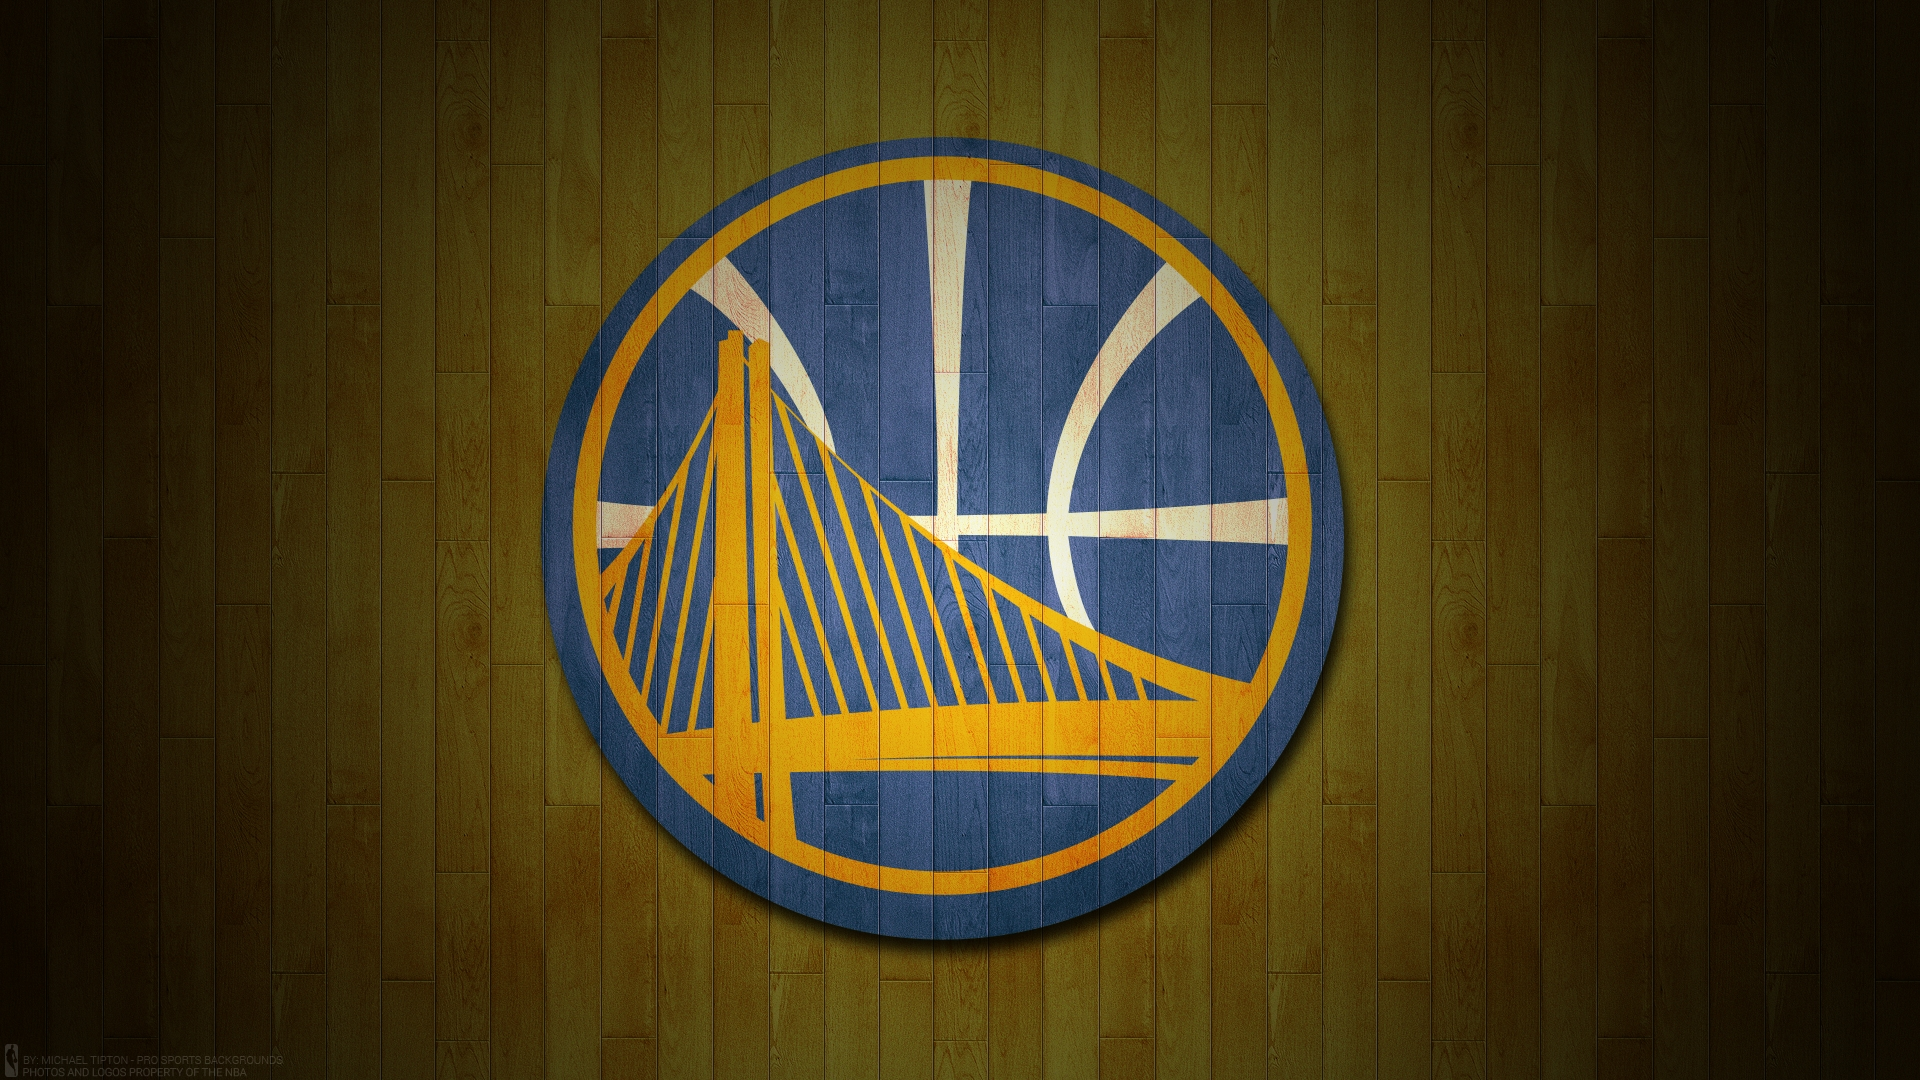 2018 golden state warriors wallpapers - pc |iphone| android